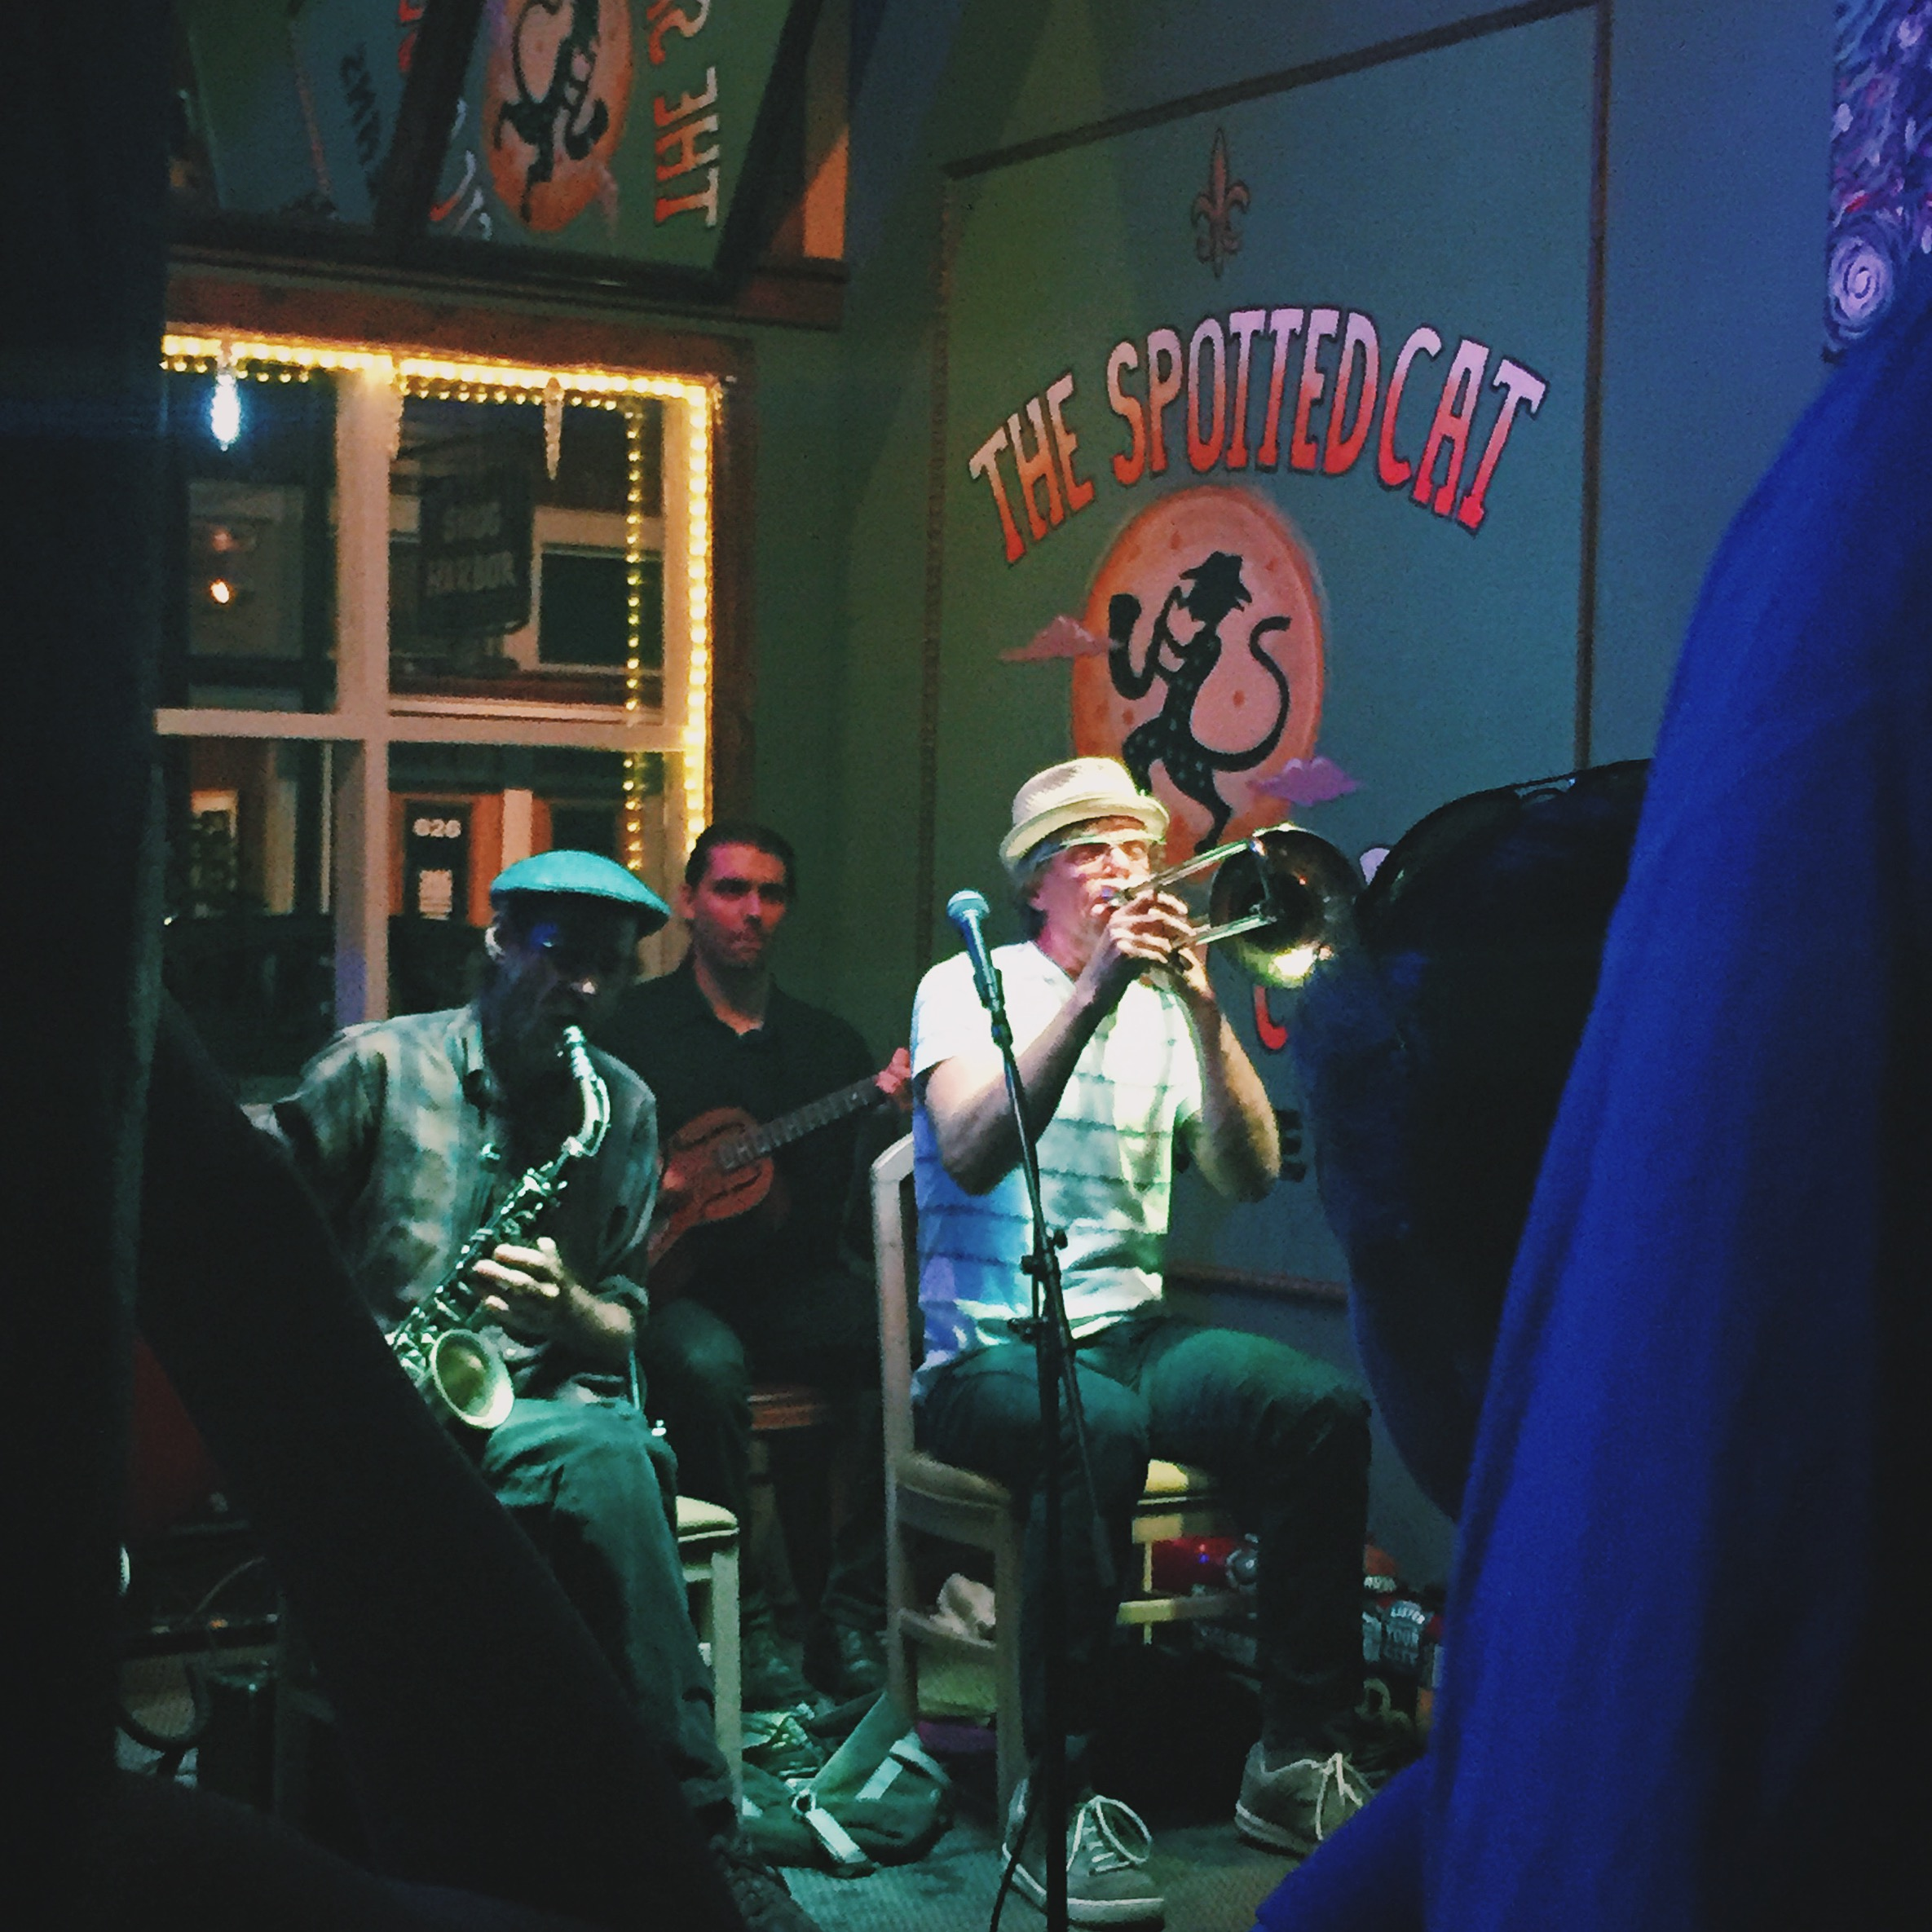 The Spotted Cat, Frenchmen Street, New Orleans, La